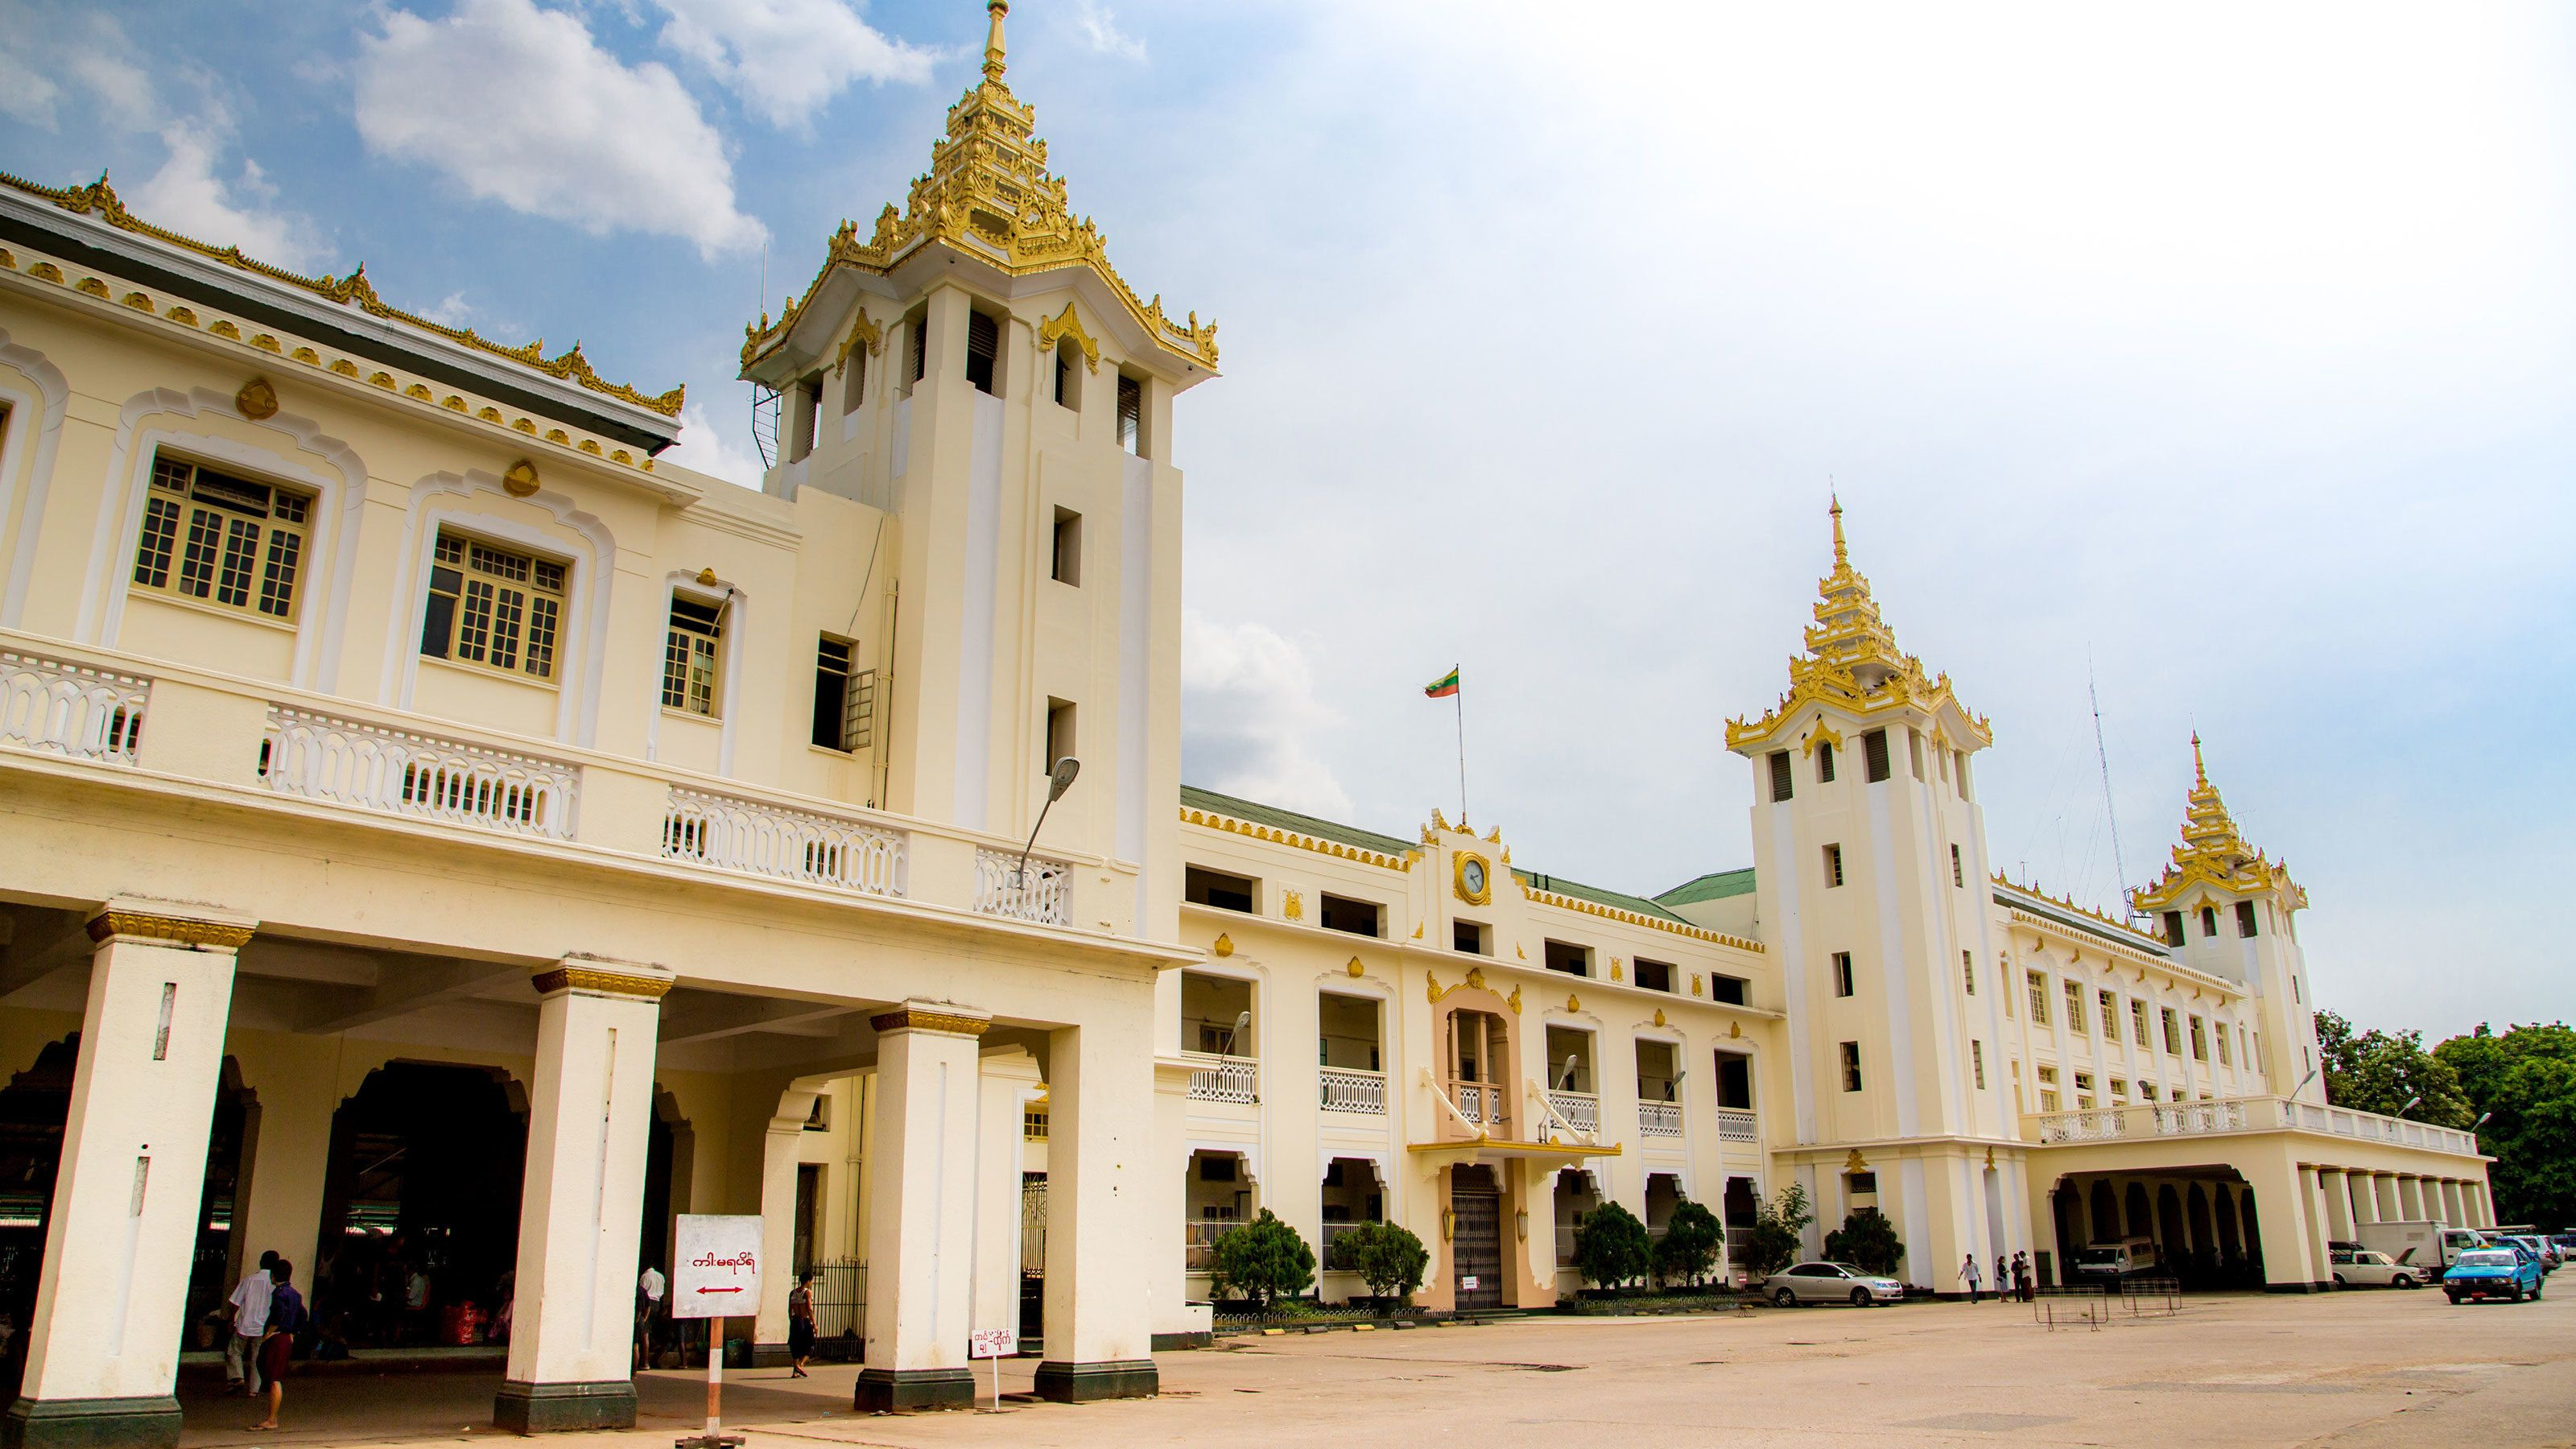 White and gold building of City Hall in Yangon